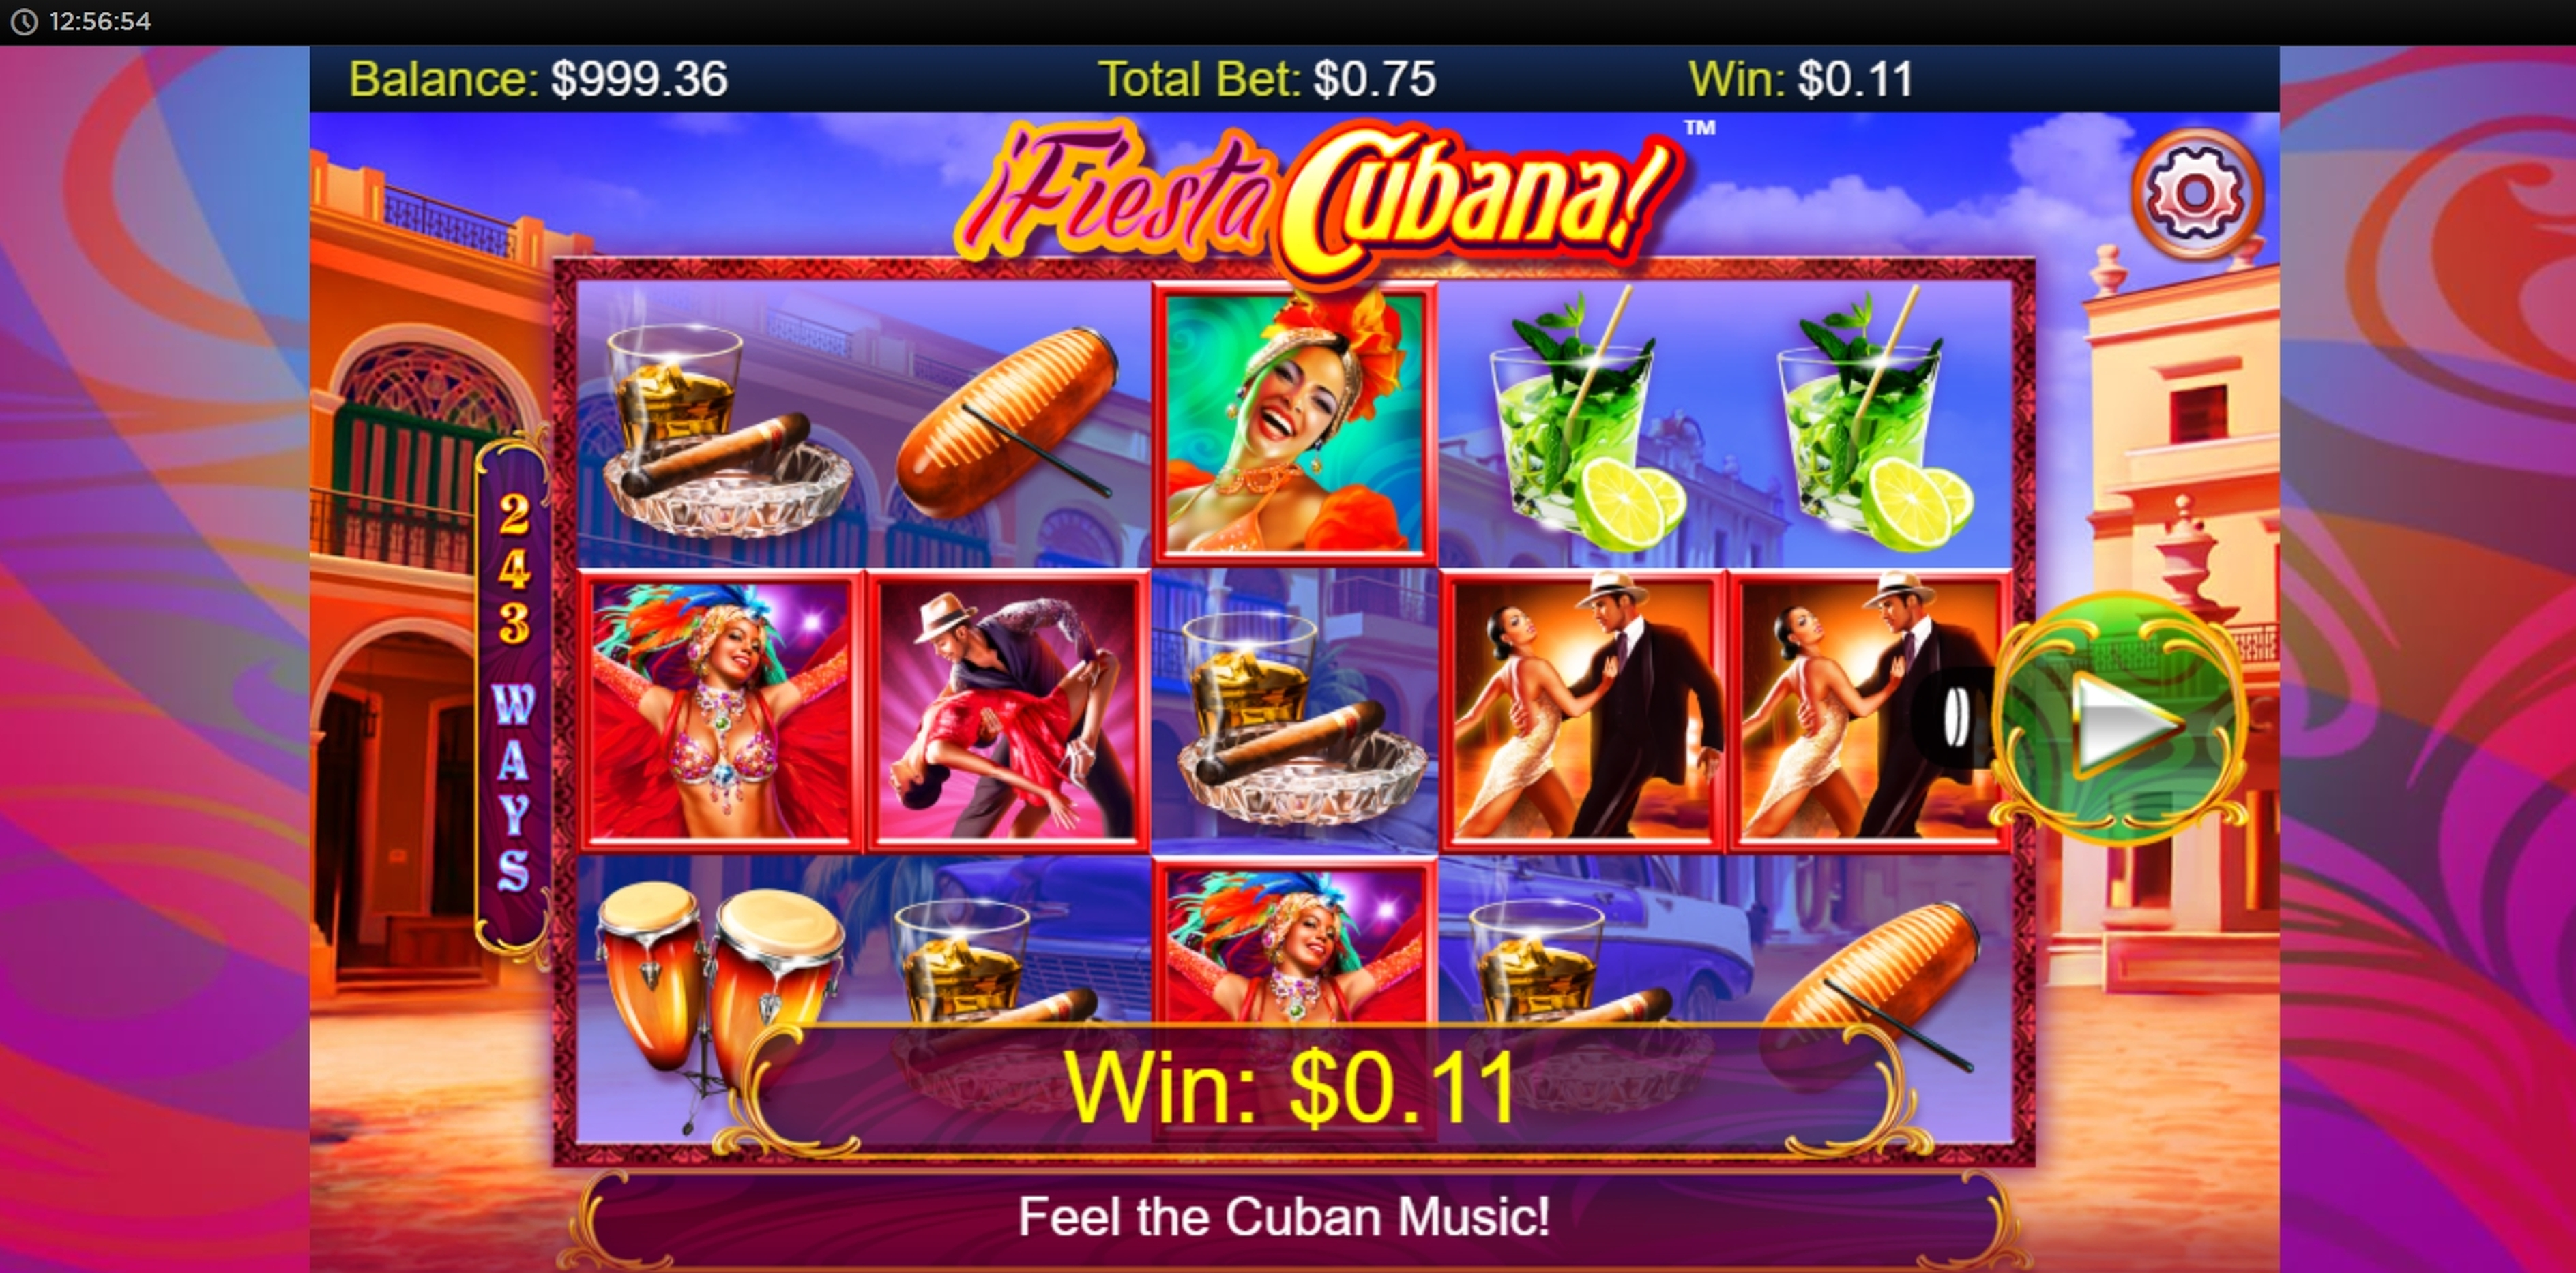 Win Money in Fiesta Cubana Free Slot Game by Side City